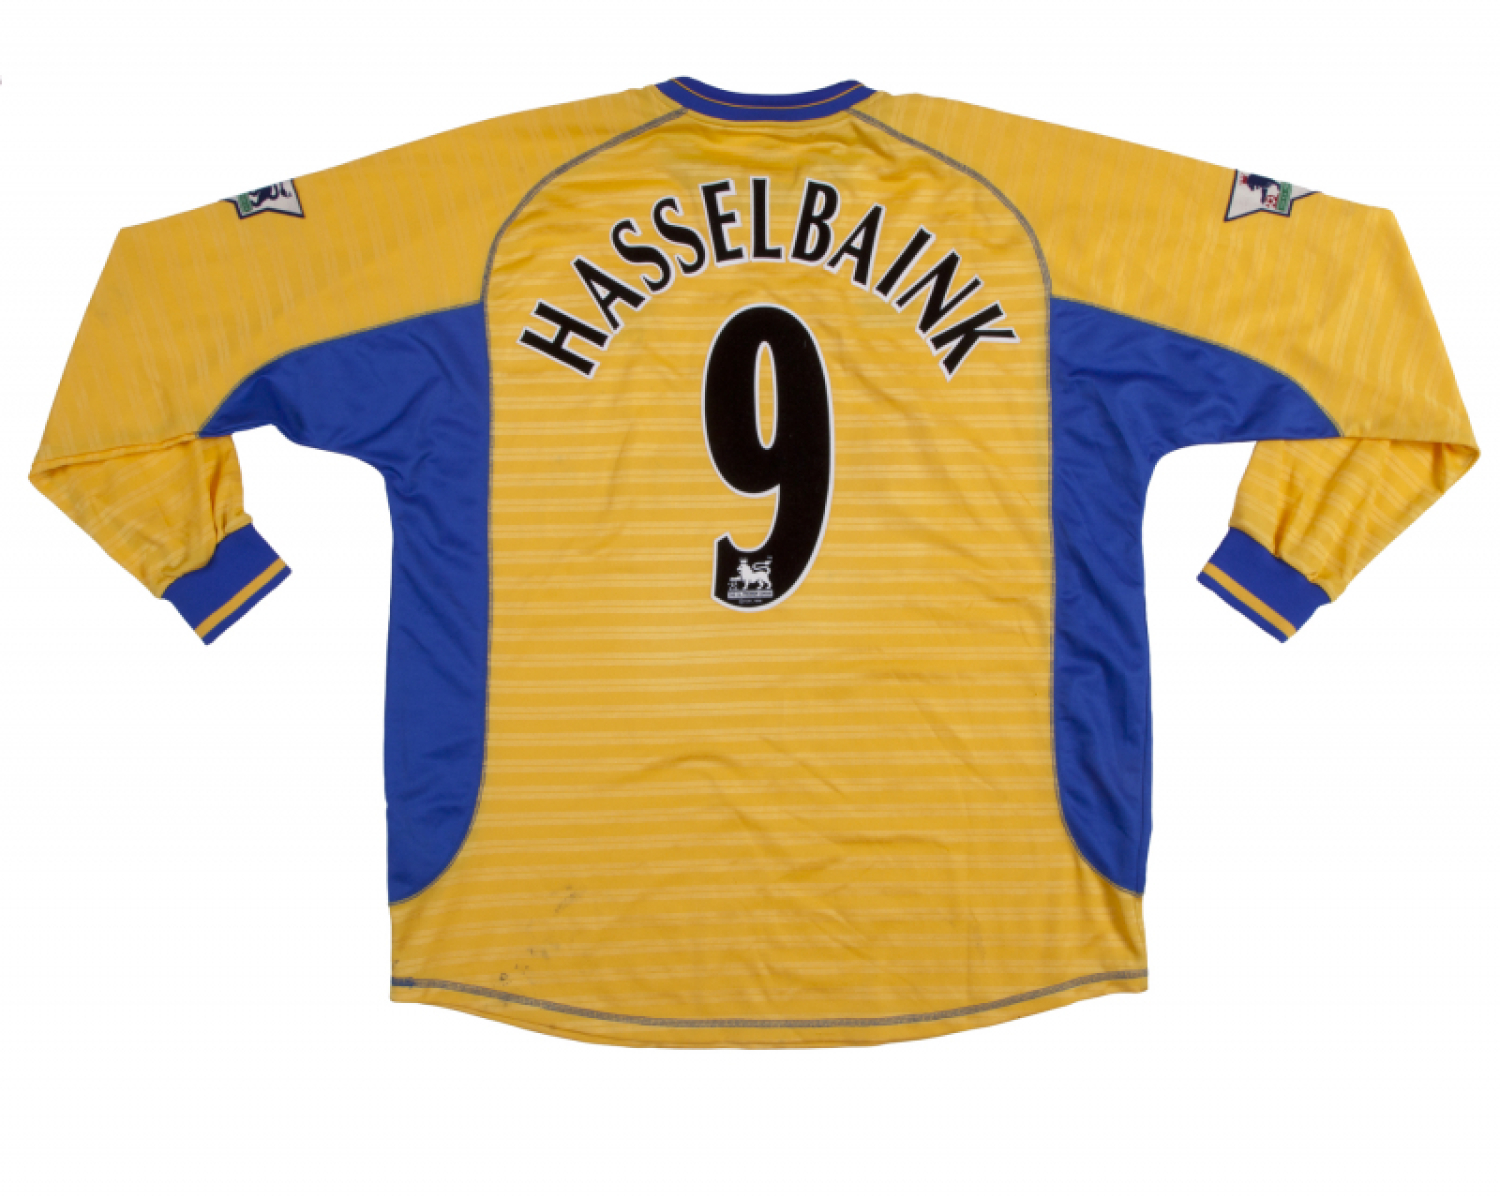 sale retailer 7f7d2 f32fb JIMMY FLOYD HASSELBAINK SIGNED 2001-2002 CHELSEA FC MATCH ...